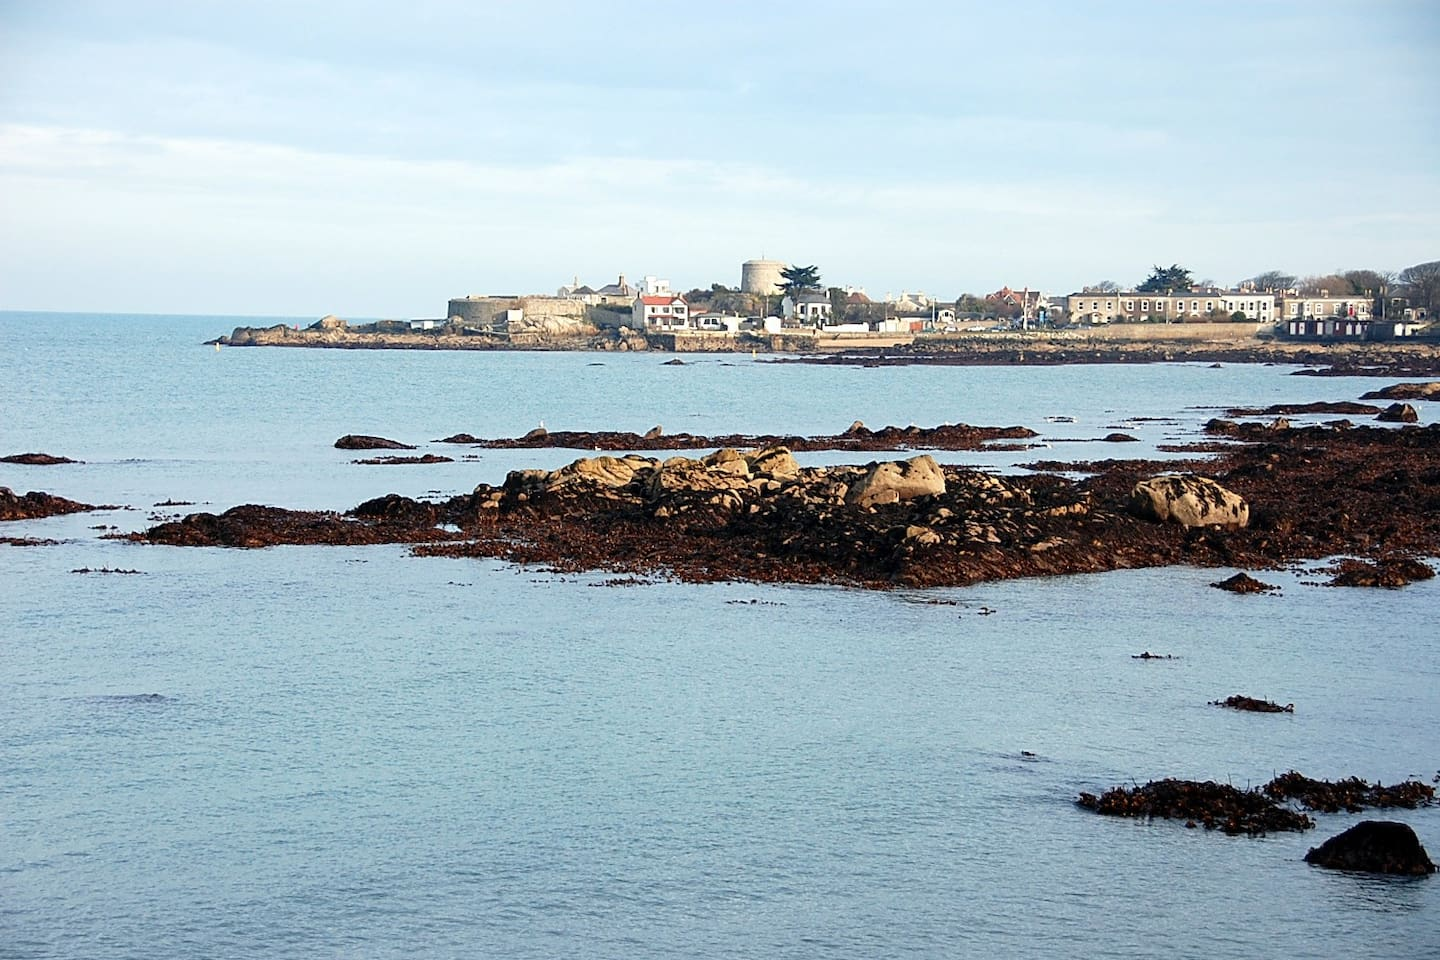 A view of nearby Sandycove with Joyce's Tower in the background...